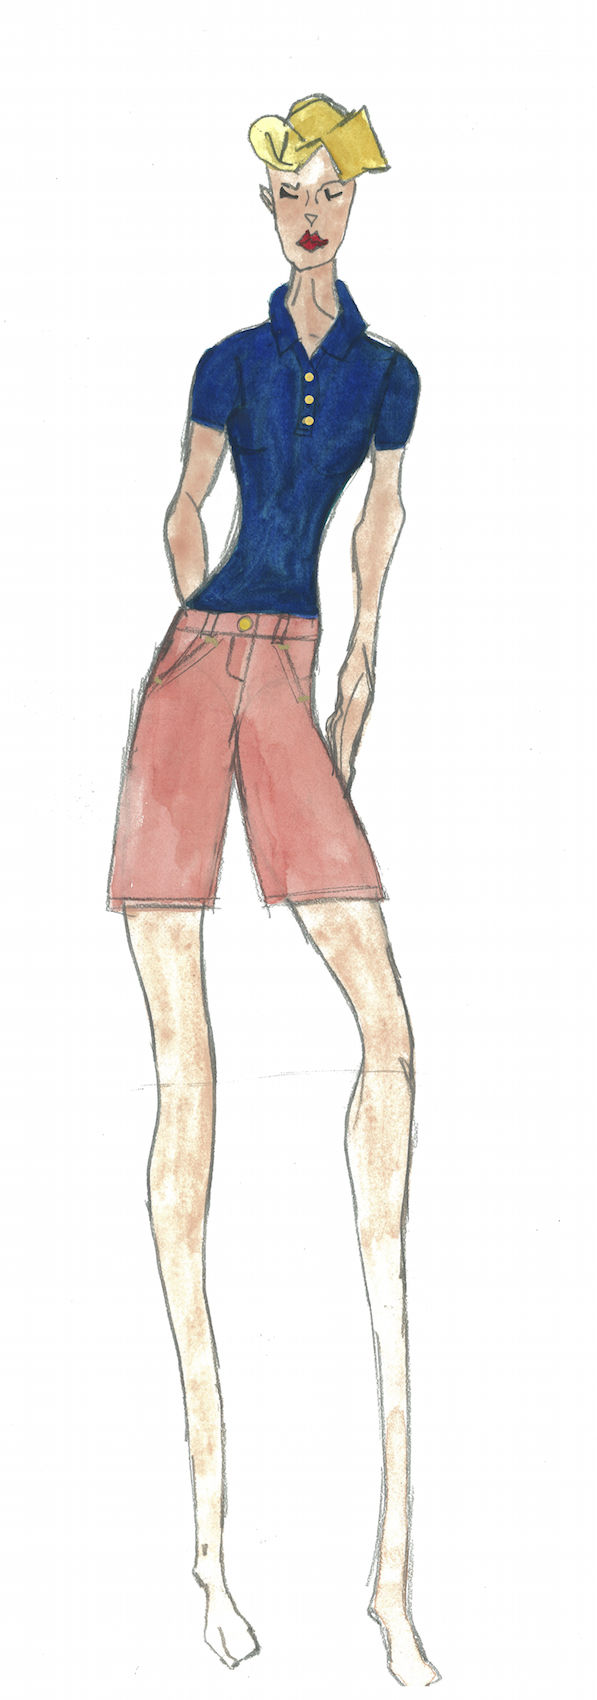 Meg Campbell Fashion Sketch with blue shirt and salmon colored pants